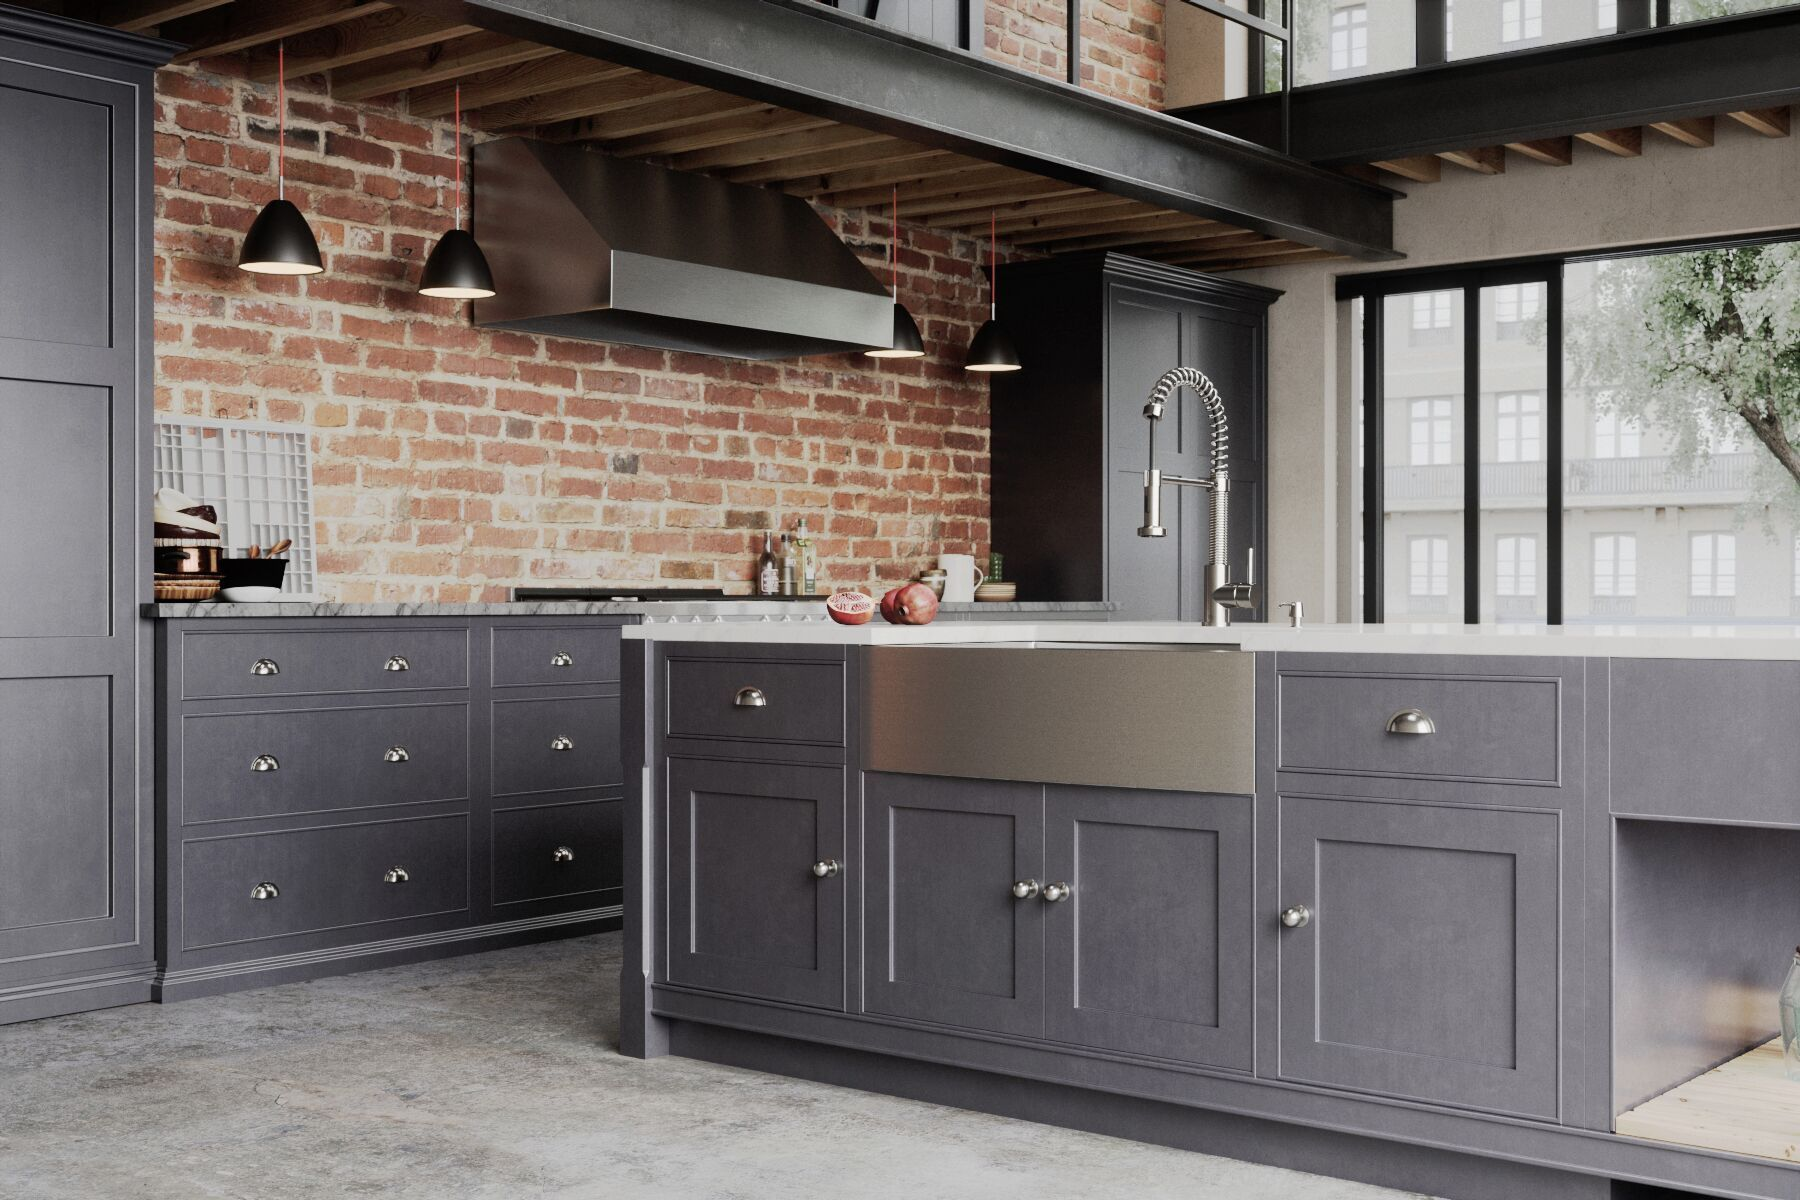 Wall Kitchen Island Sink Google Search Custom Kitchen Island Grey Kitchen Island Kitchen Island With Seating